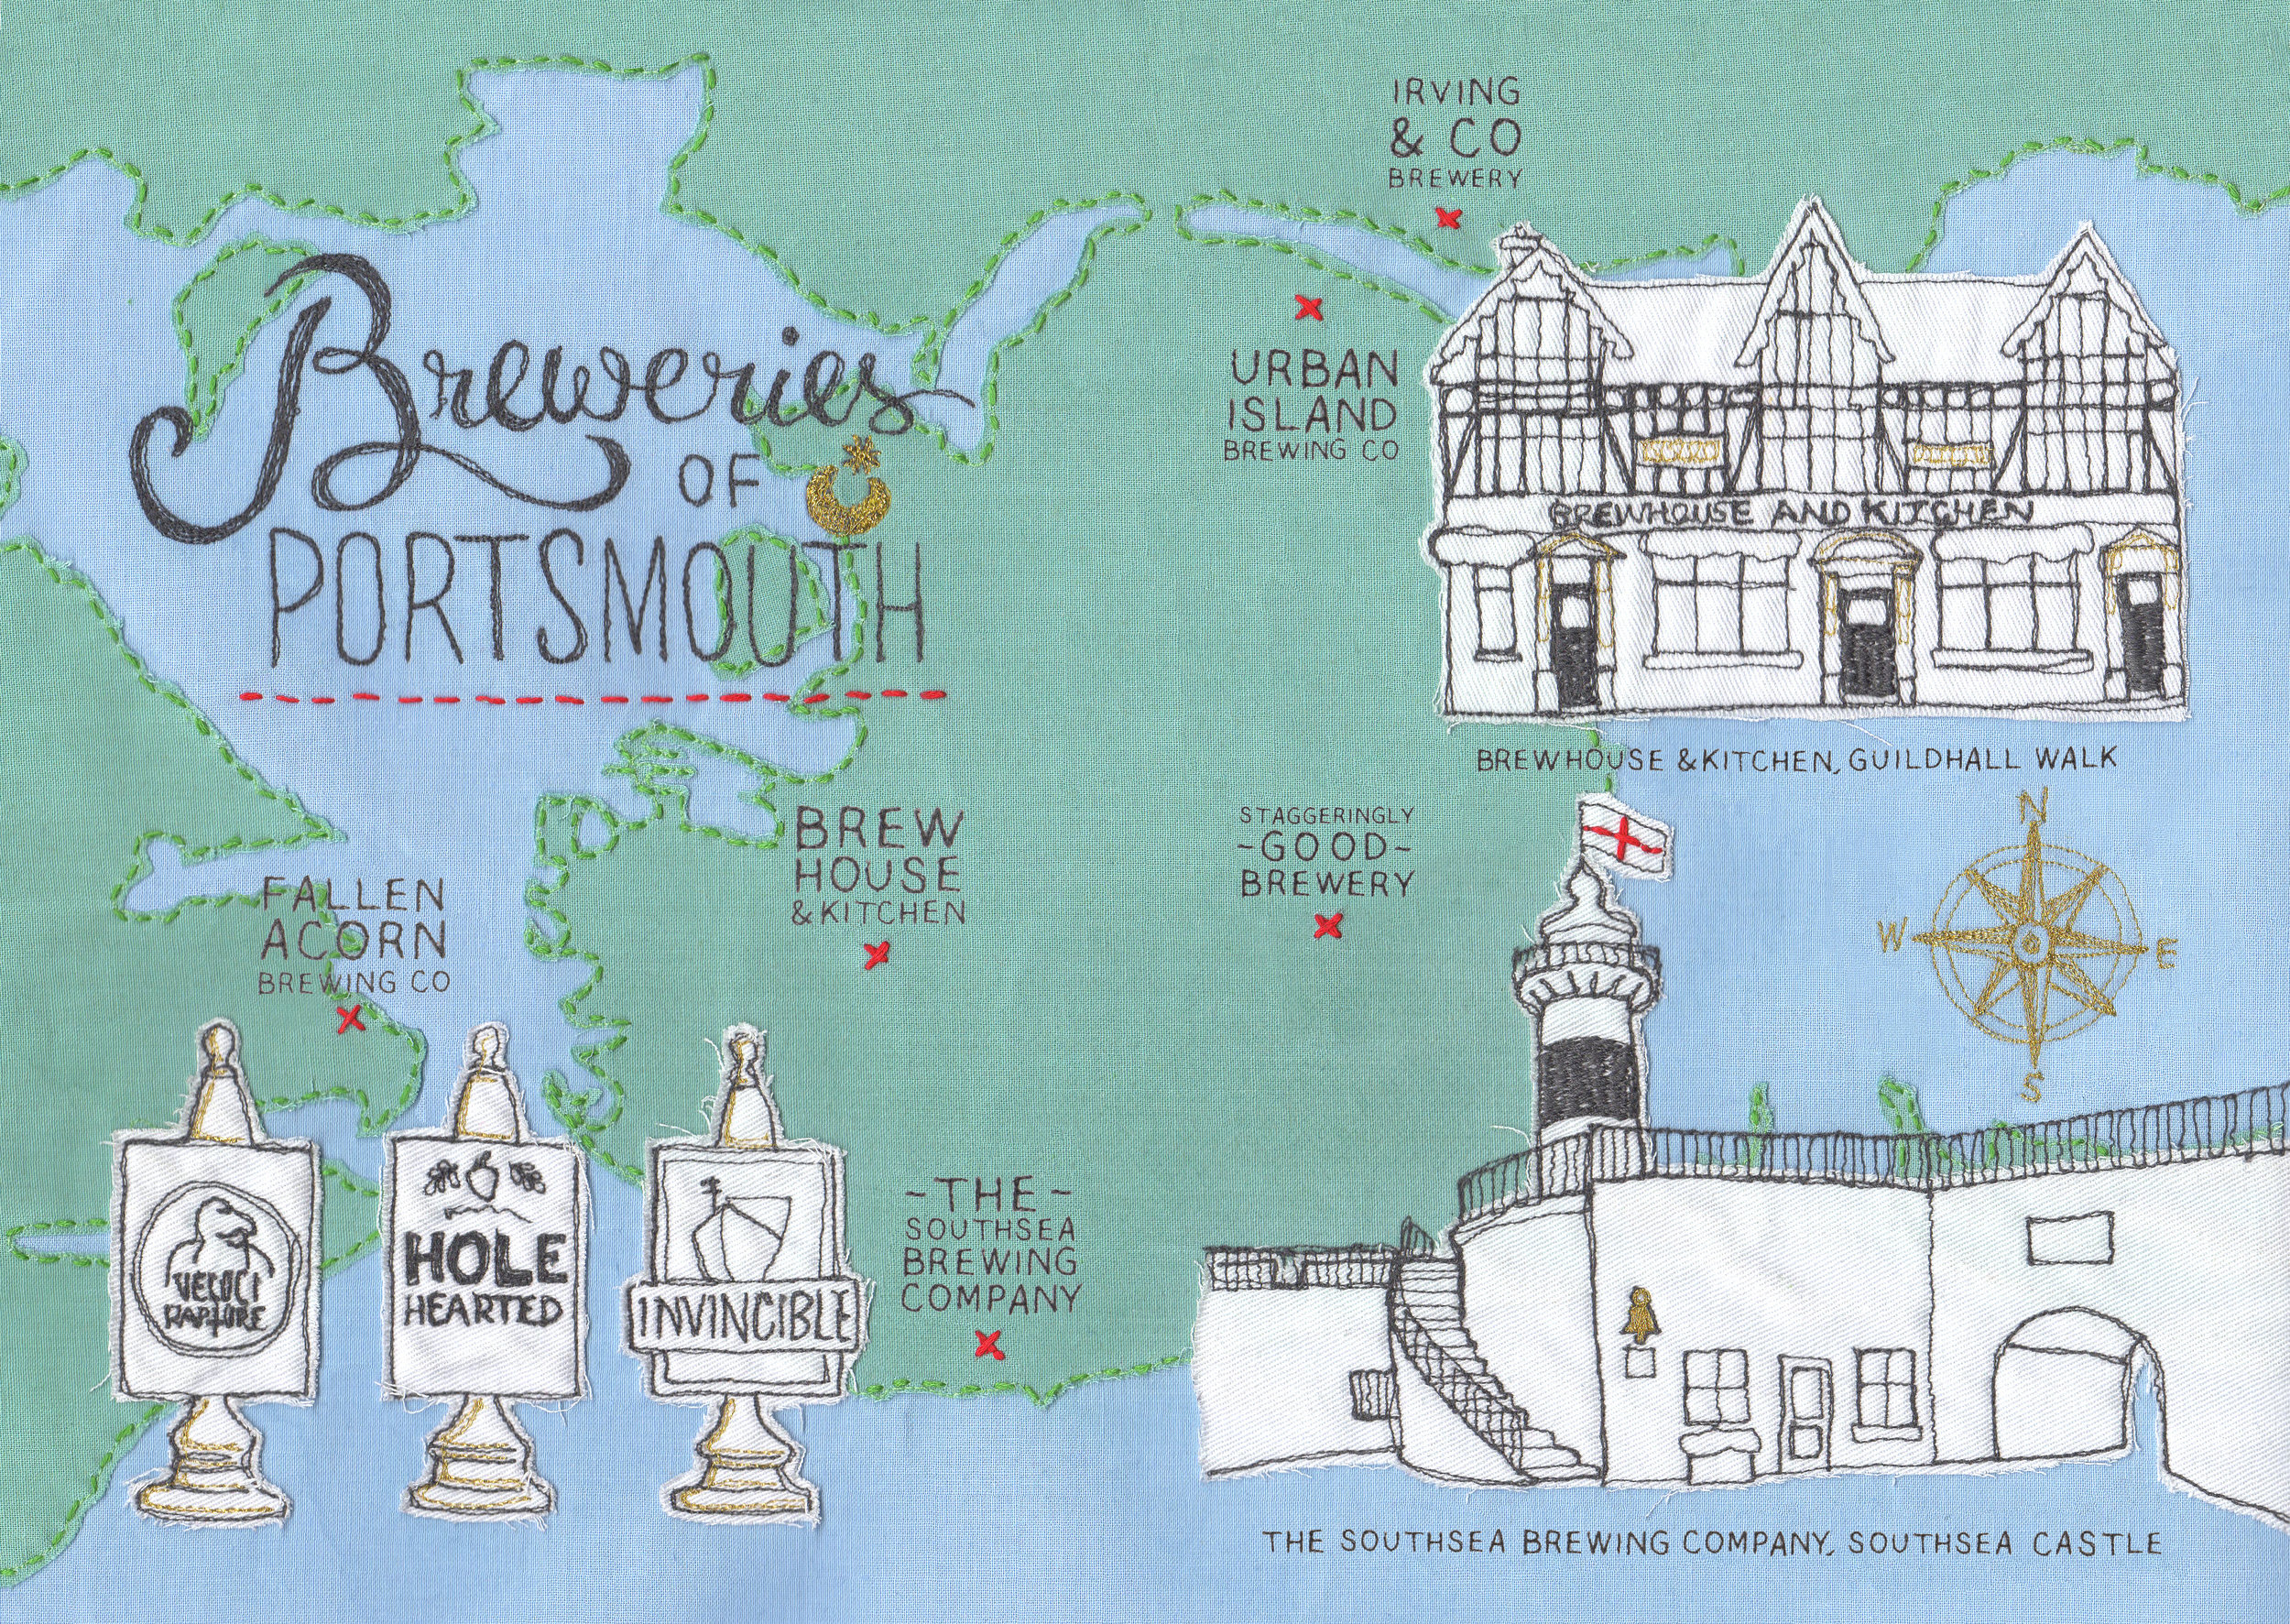 Breweries of Portsmouth Artwork for Taste Of Portsmouth Magazine